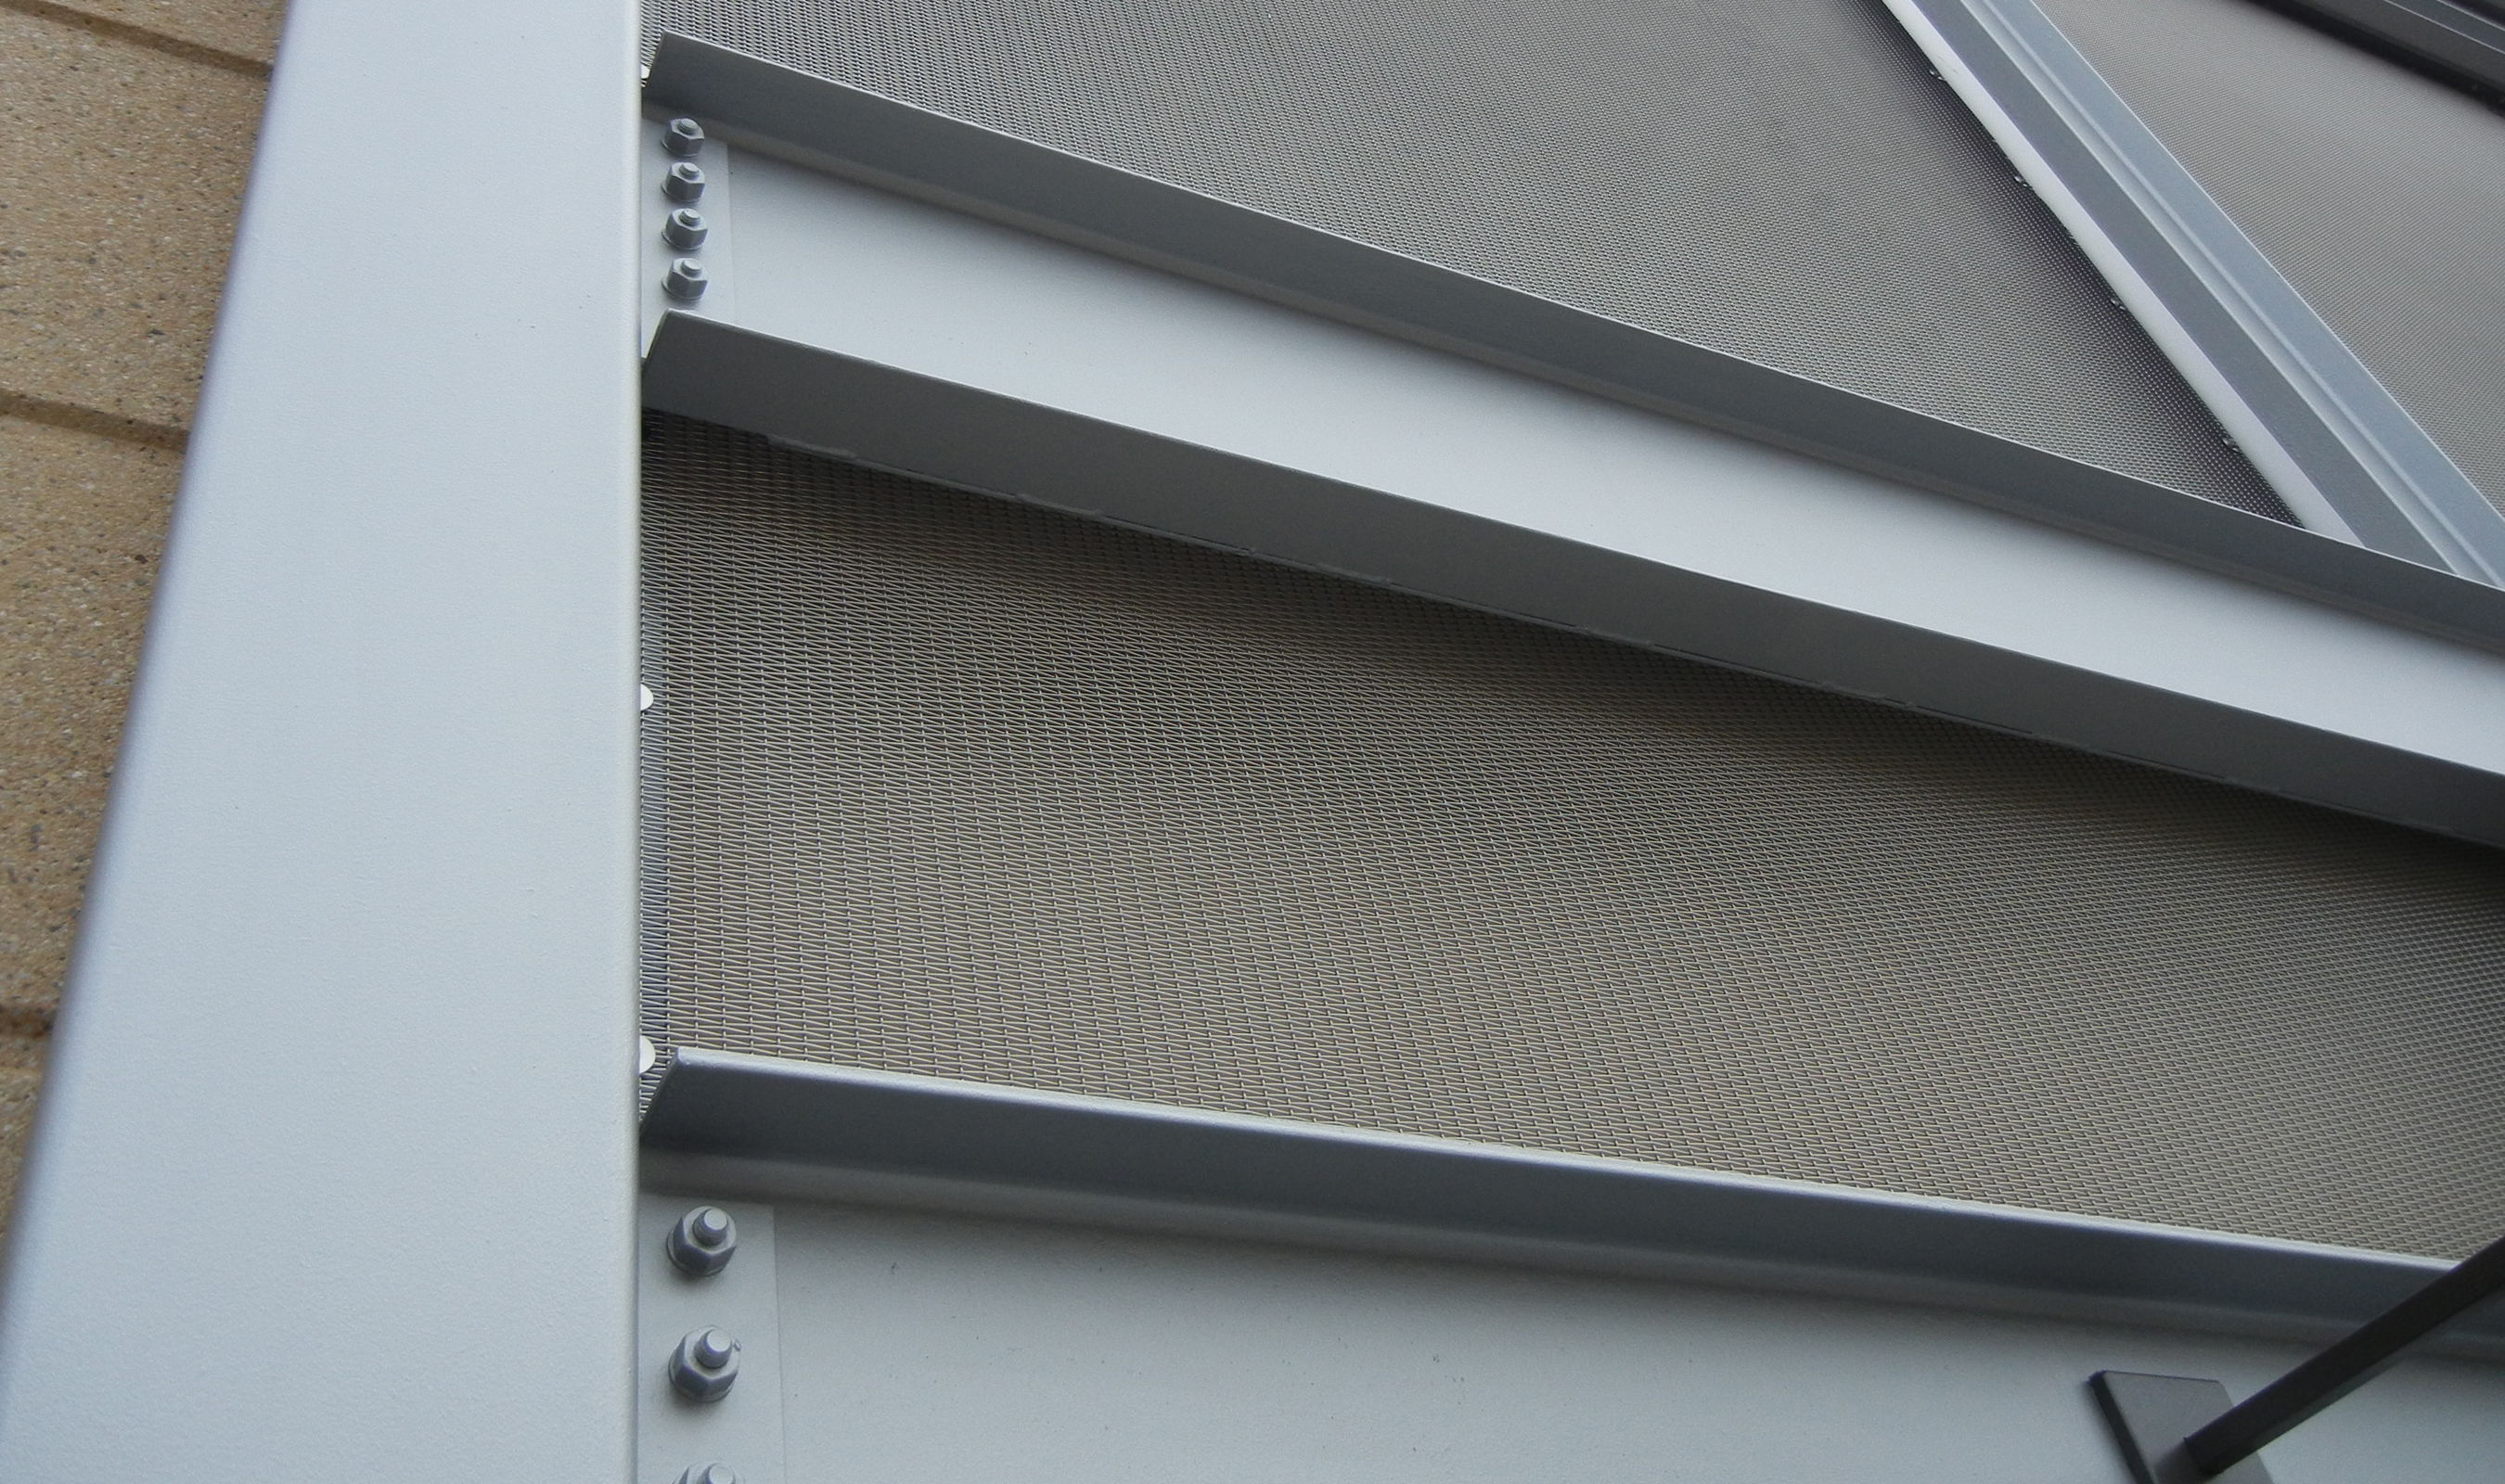 The rectangular plain crimped wire mesh was manufactured to size and were installed using a powder coated angle and bar pressure fit by bolts.